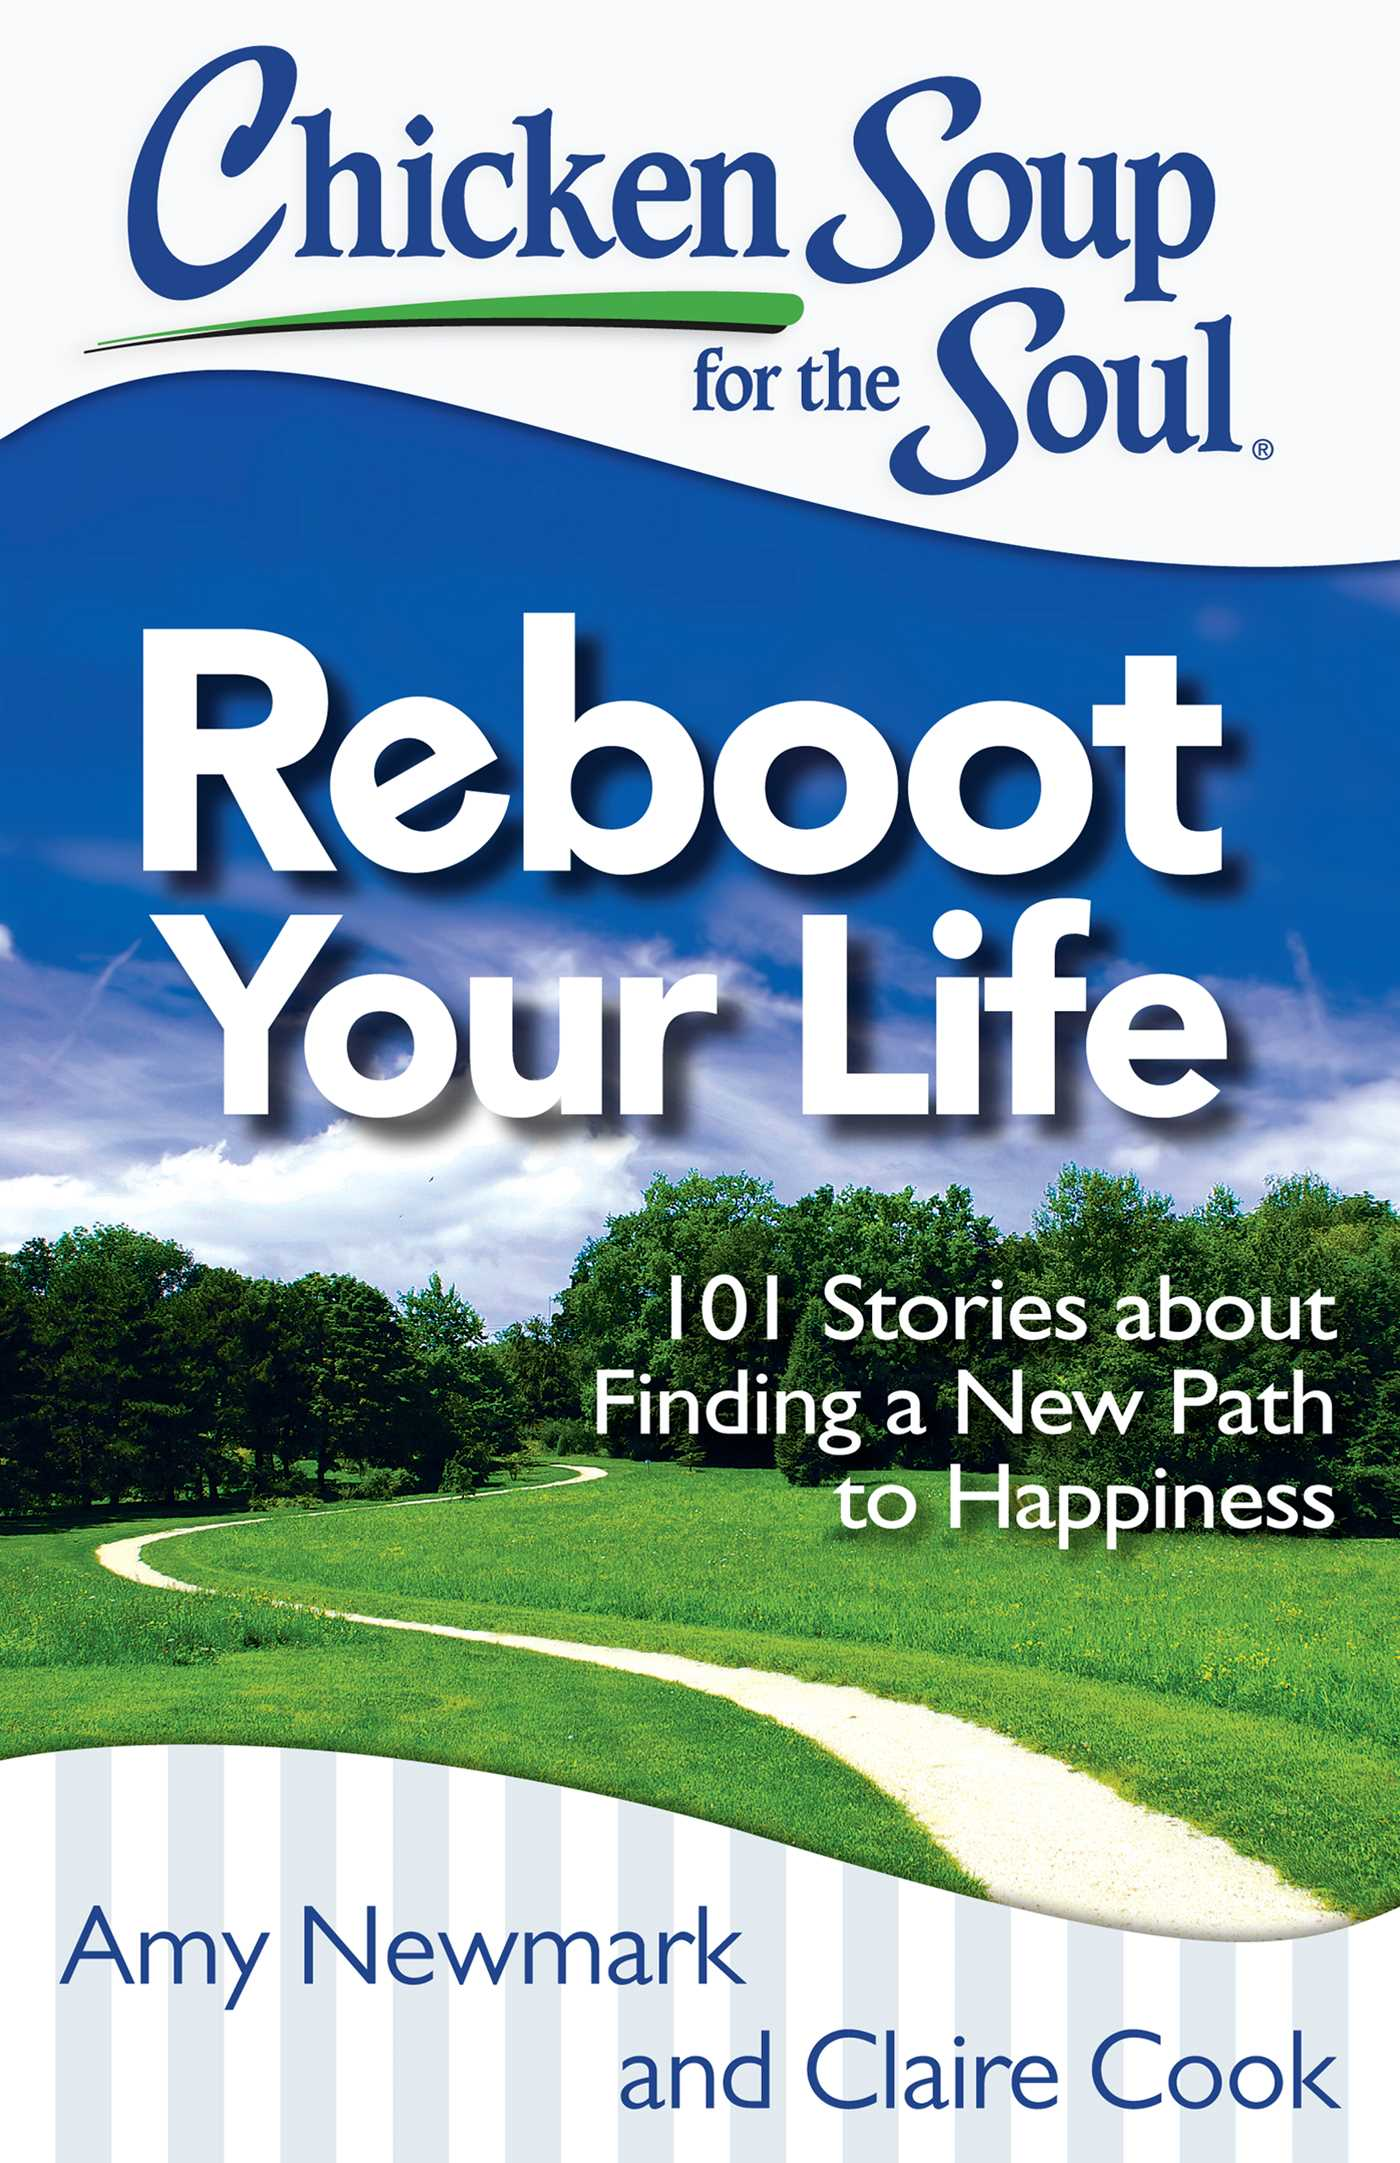 Chicken soup for the soul reboot your life 9781611599404 hr